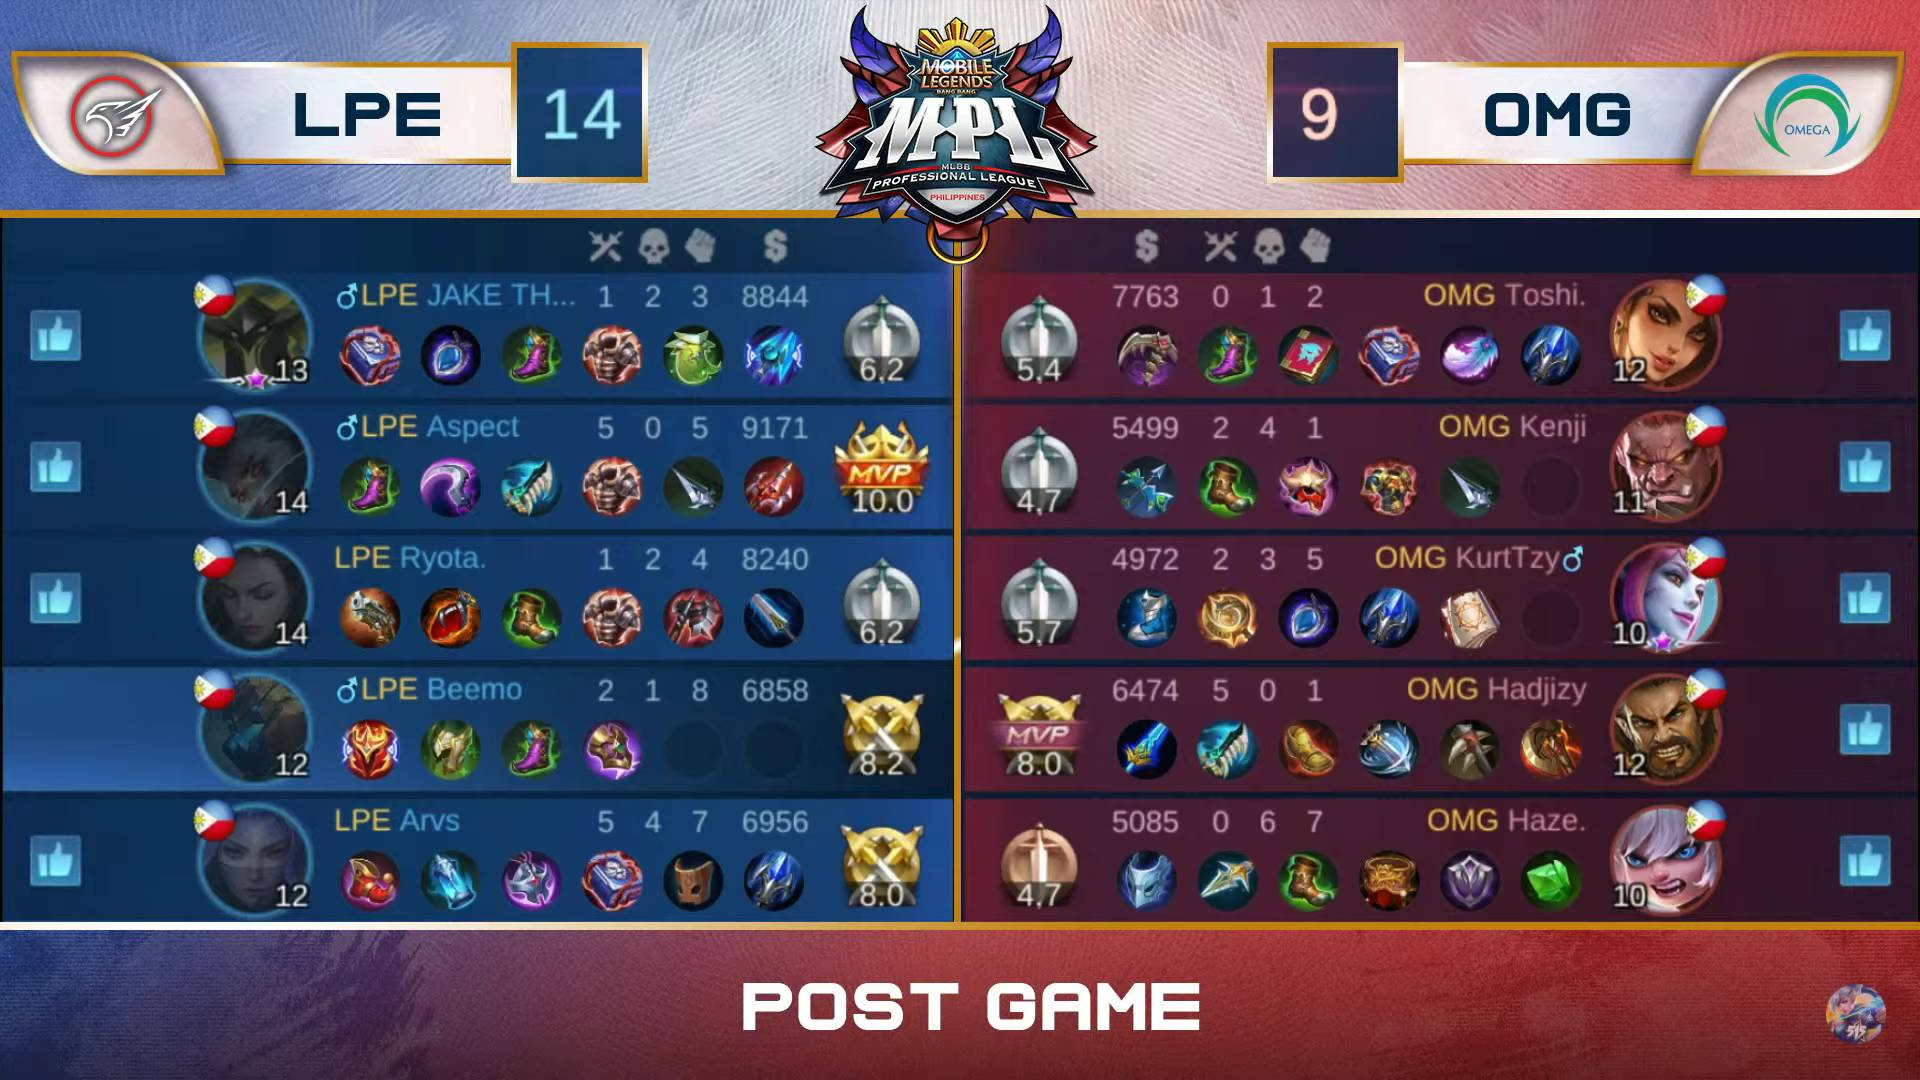 MPL-PH-7-Playbook-def-Omega-Game-1 Beemo plays hero as Playbook shocks Omega for second win in MPL-PH ESports Mobile Legends MPL-PH News  - philippine sports news